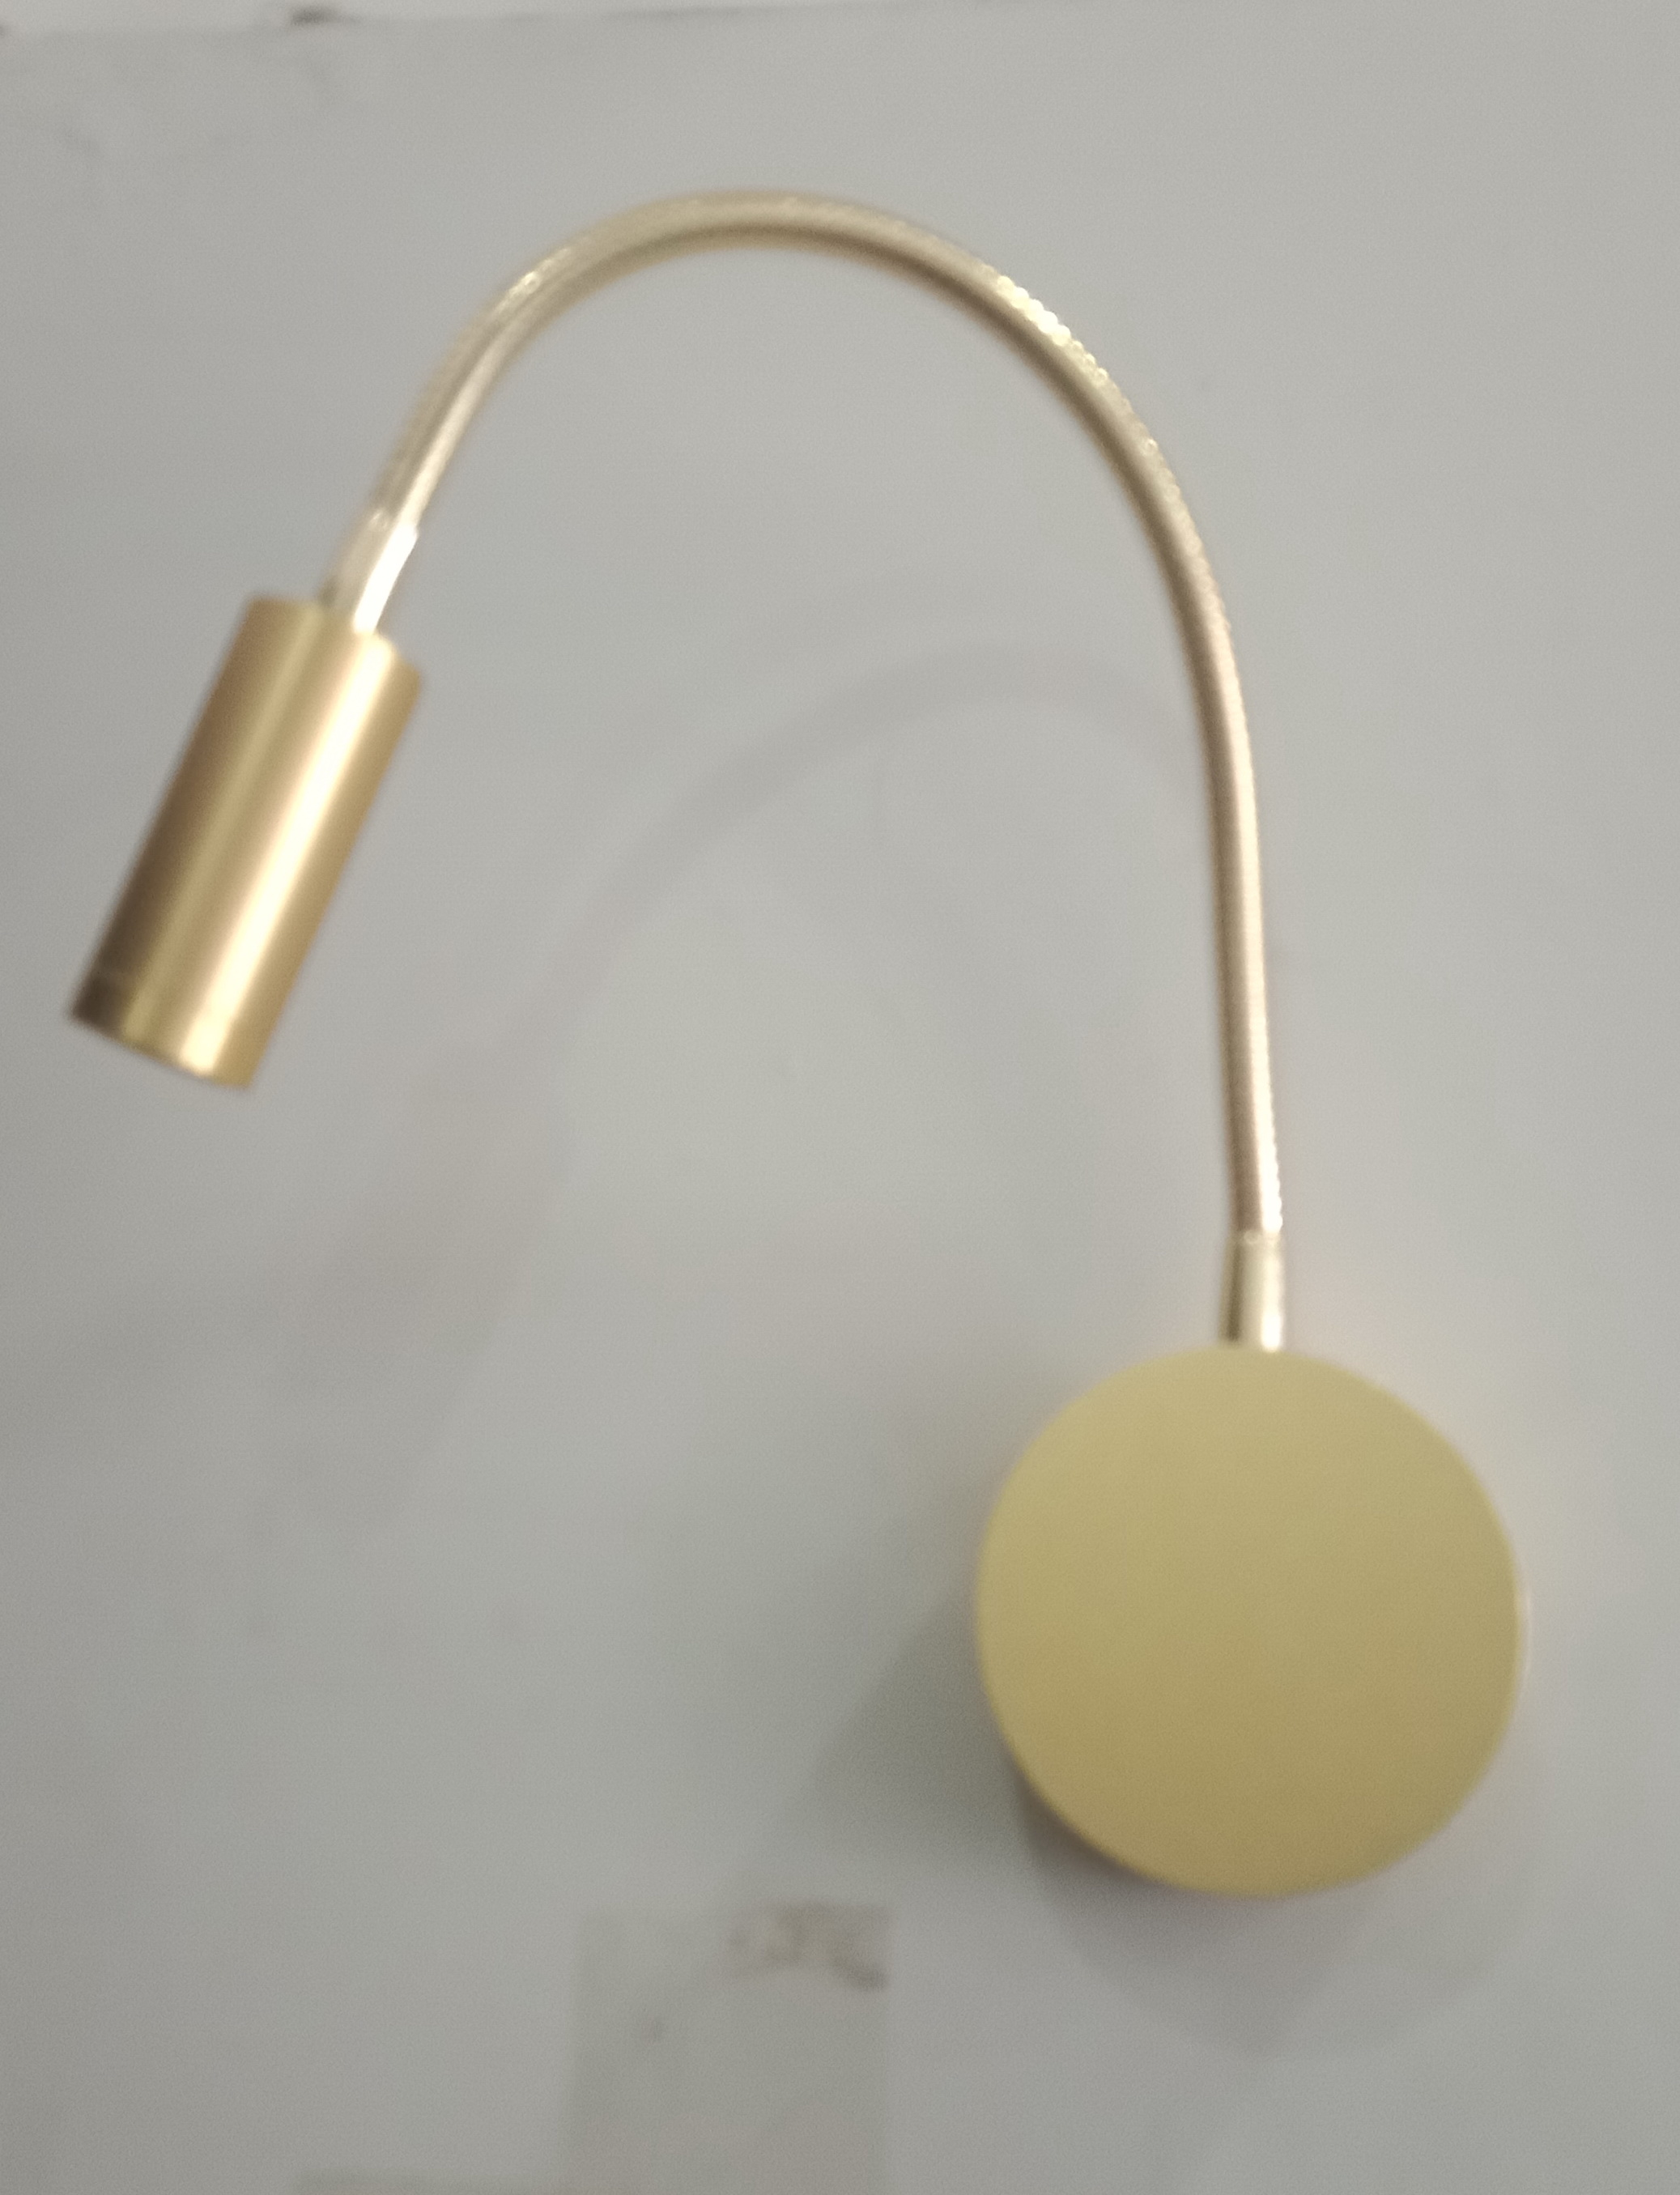 New Gold Color Bedroom Wall Lamp COB 3W Arm Wall Lamp With Switch